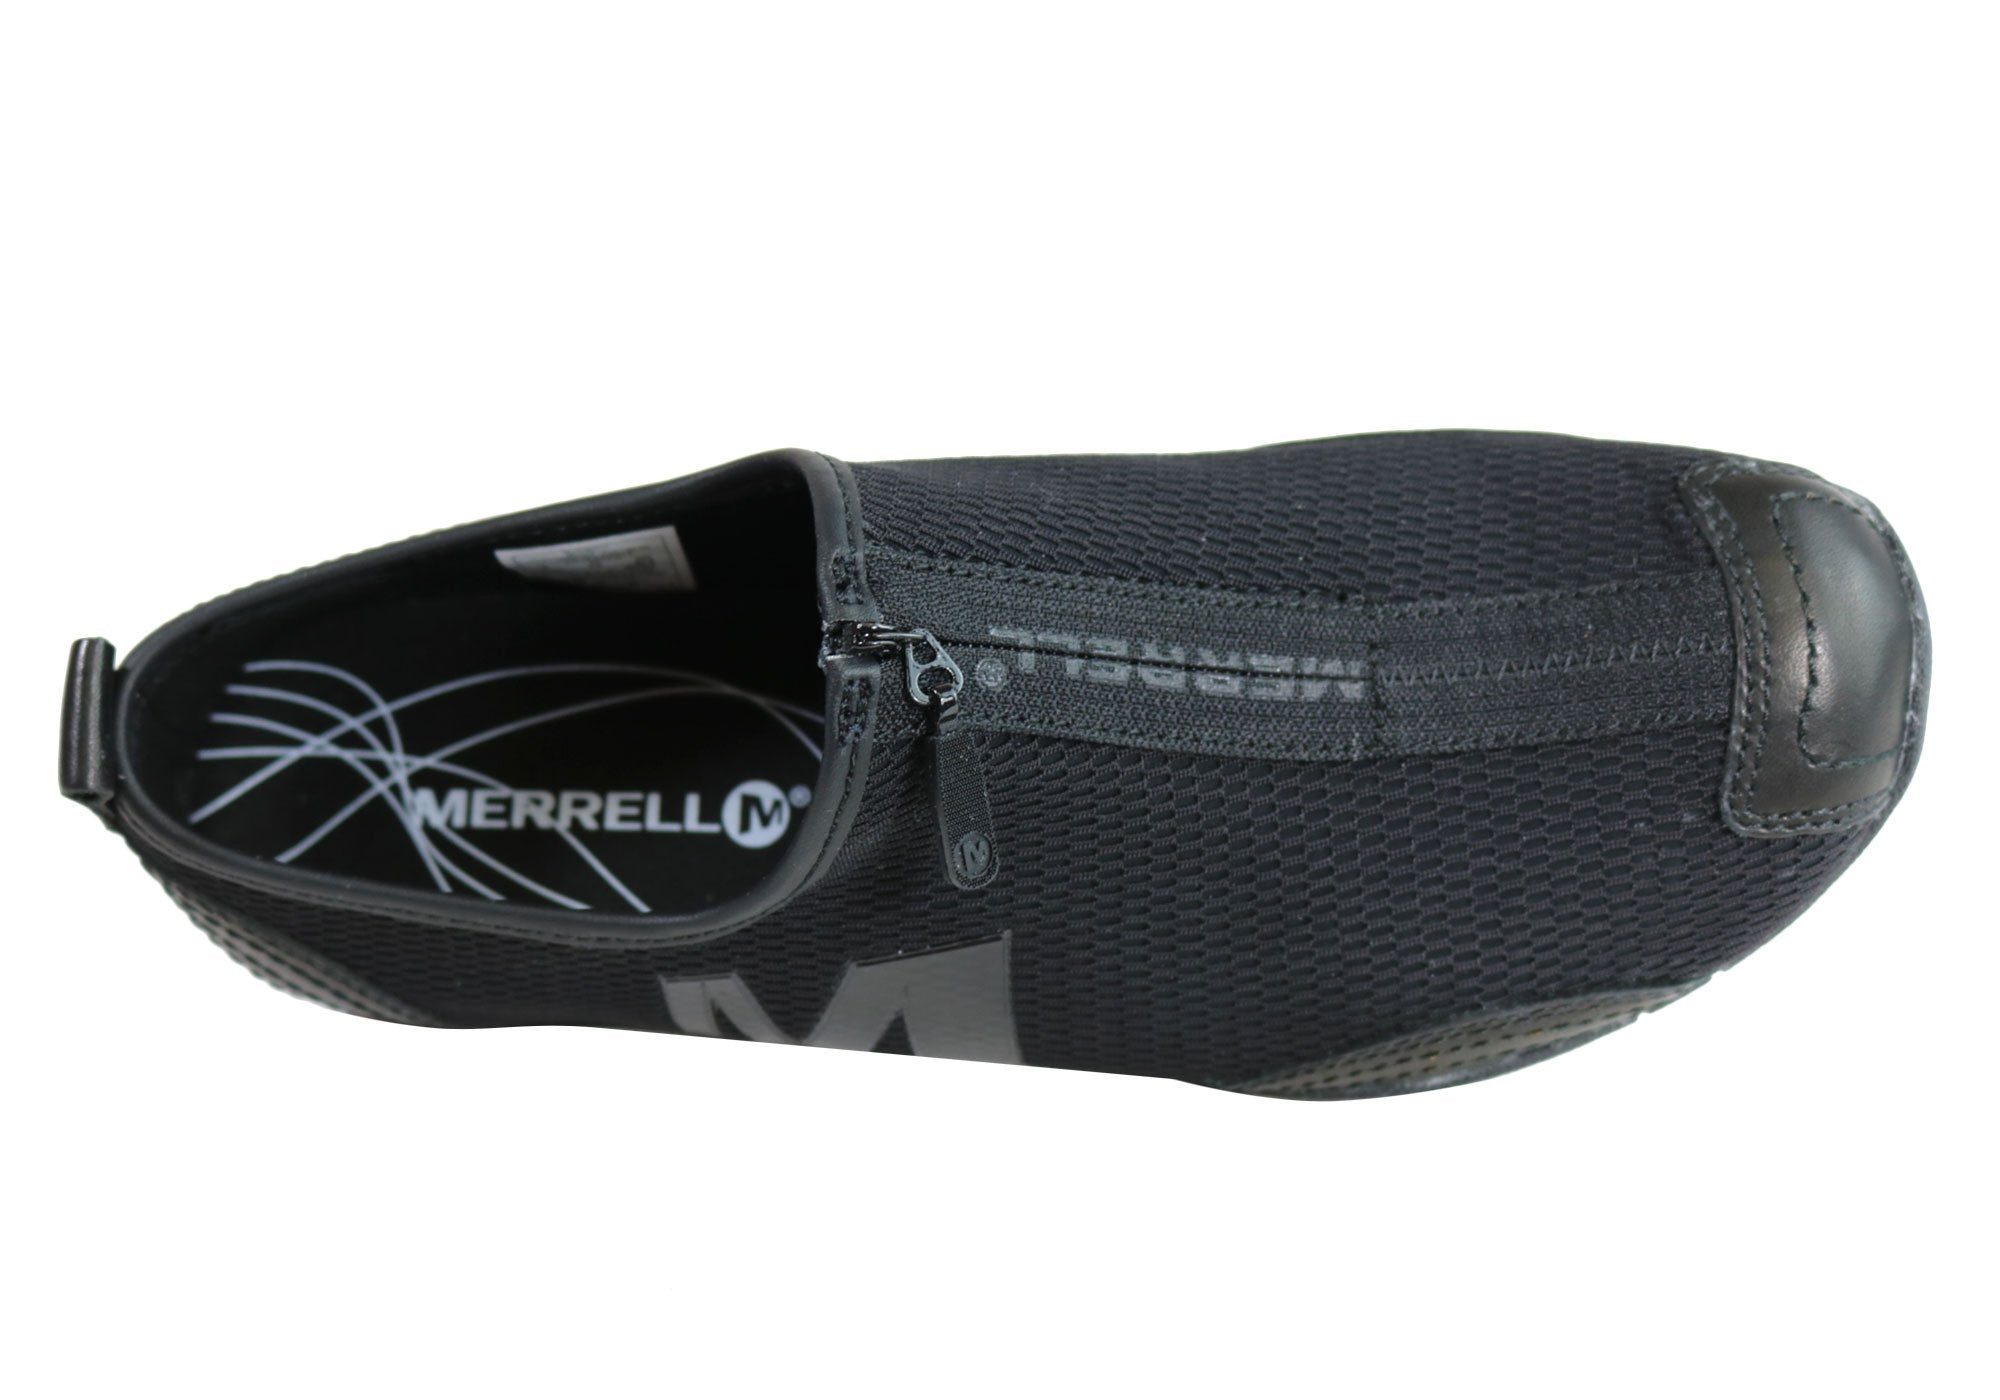 1c69953d Merrell Barrado Womens Comfortable Flat Casual Zip Shoes